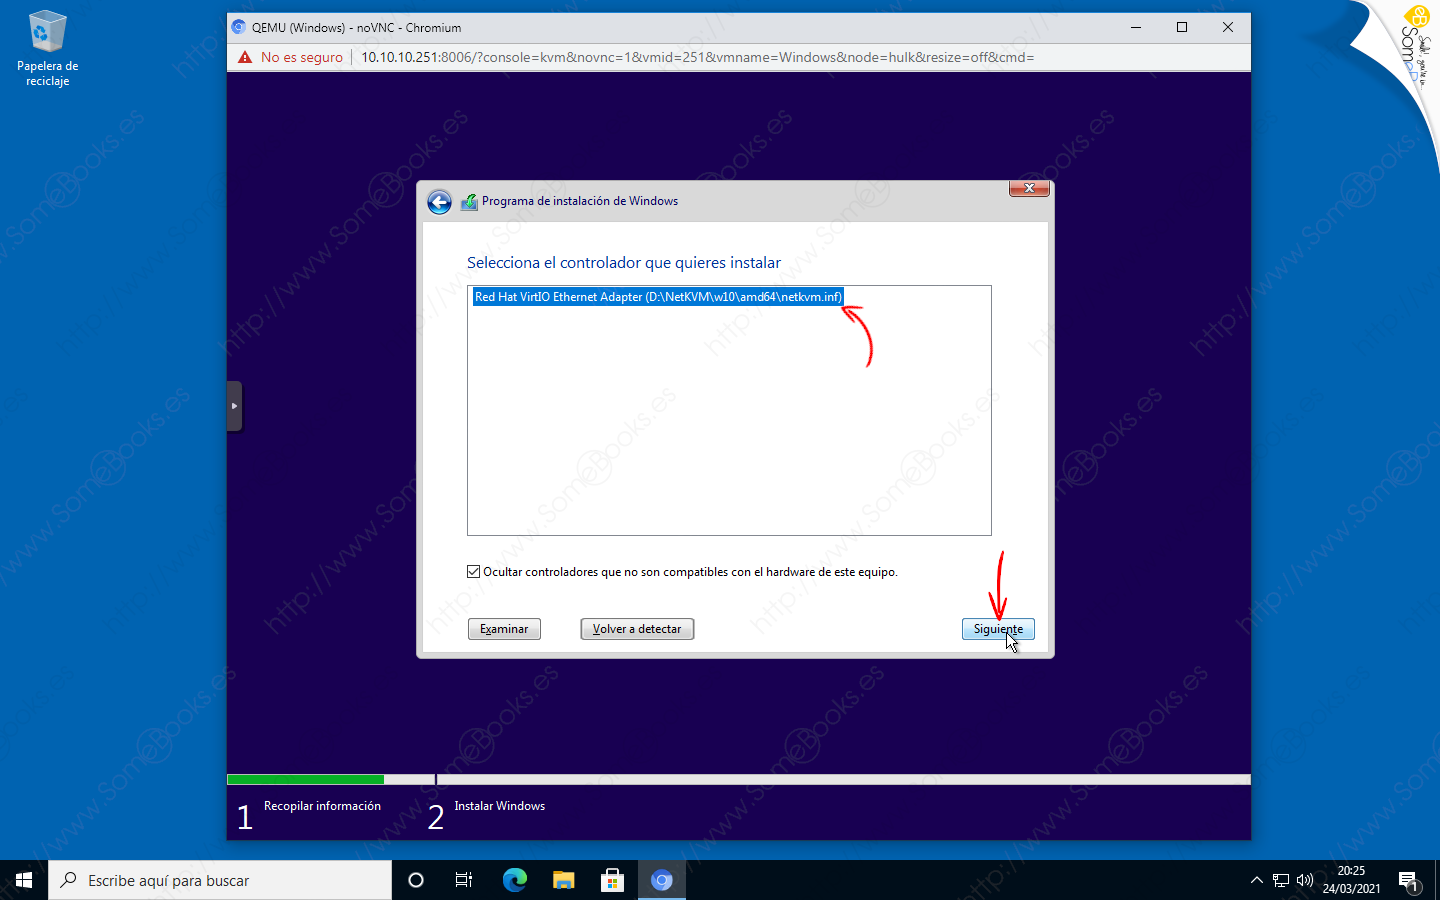 Instalar-Windows-10-en-una-maquina-virtual-sobre-Proxmox-VE-011